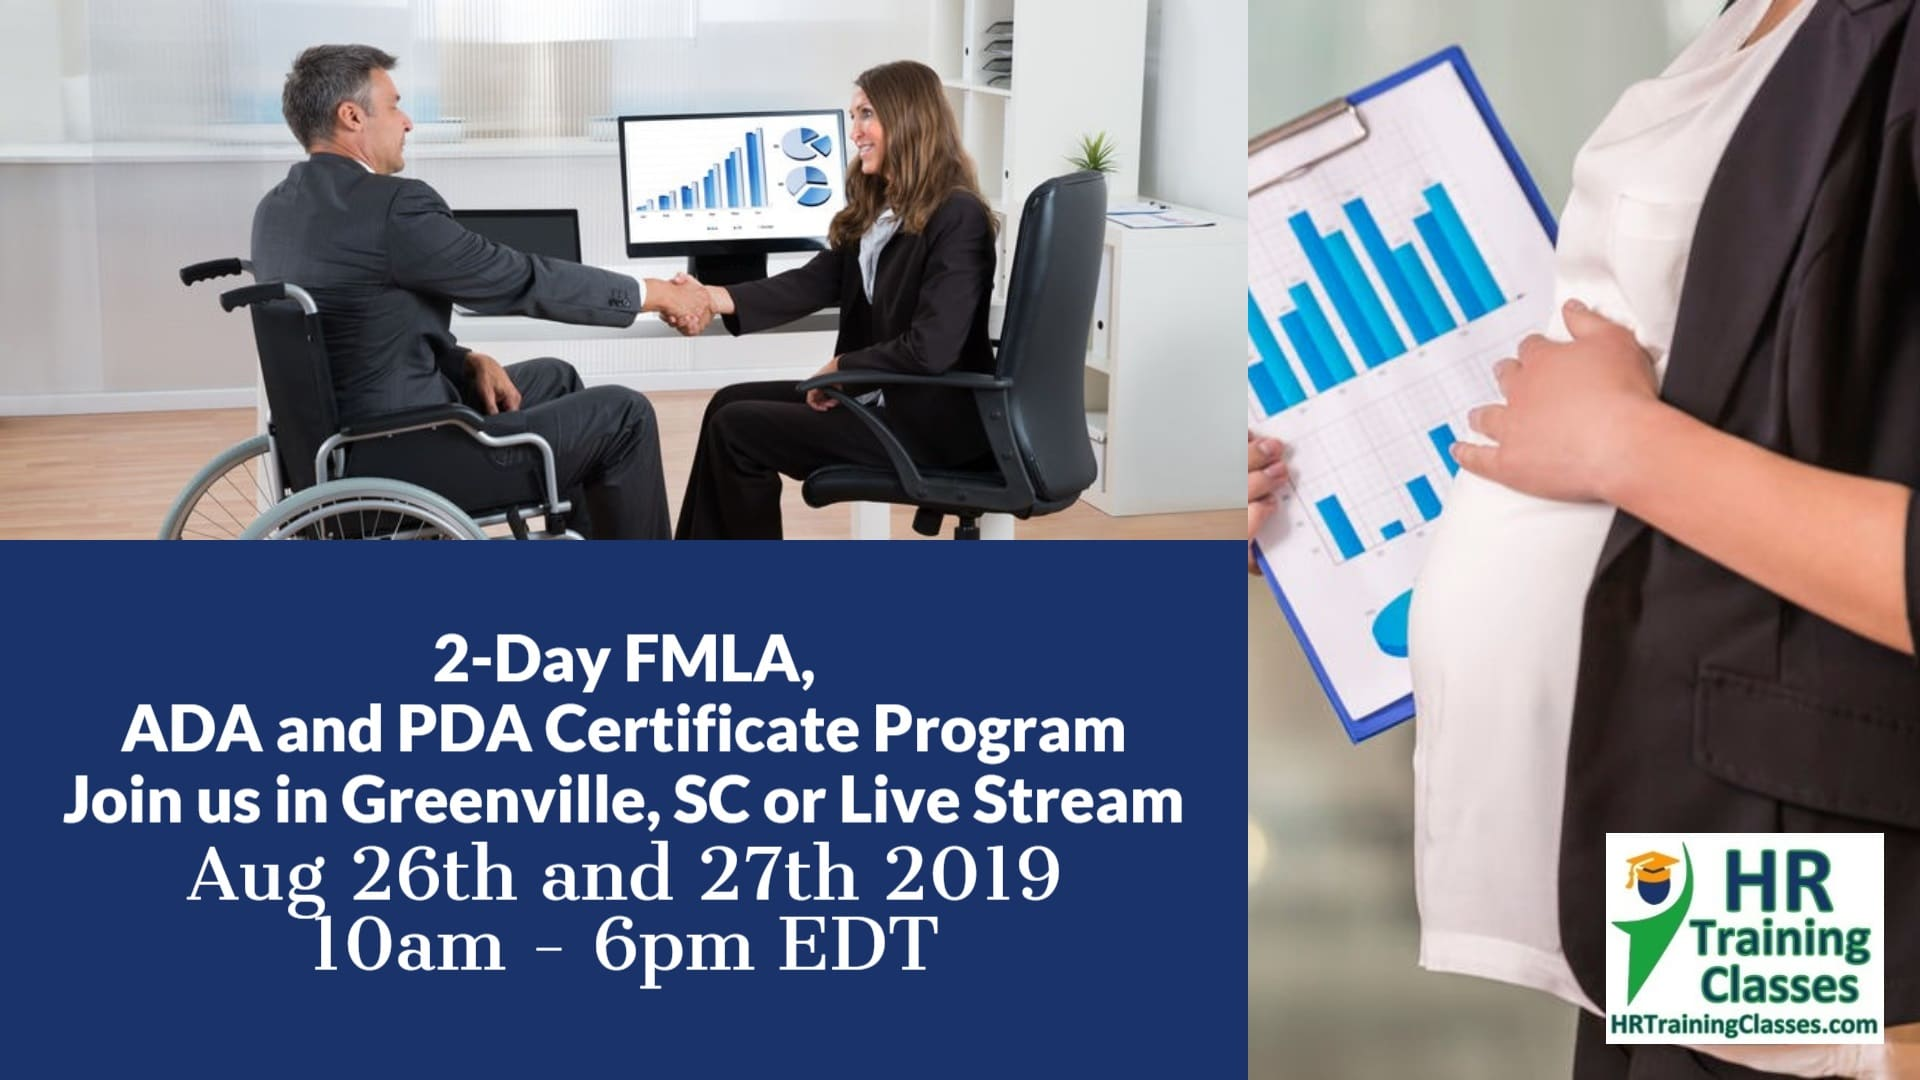 2 Day In-Person FMLA ADA and PDA Certificate Program Aug 26 and 27 2019 Greenville South Carolina